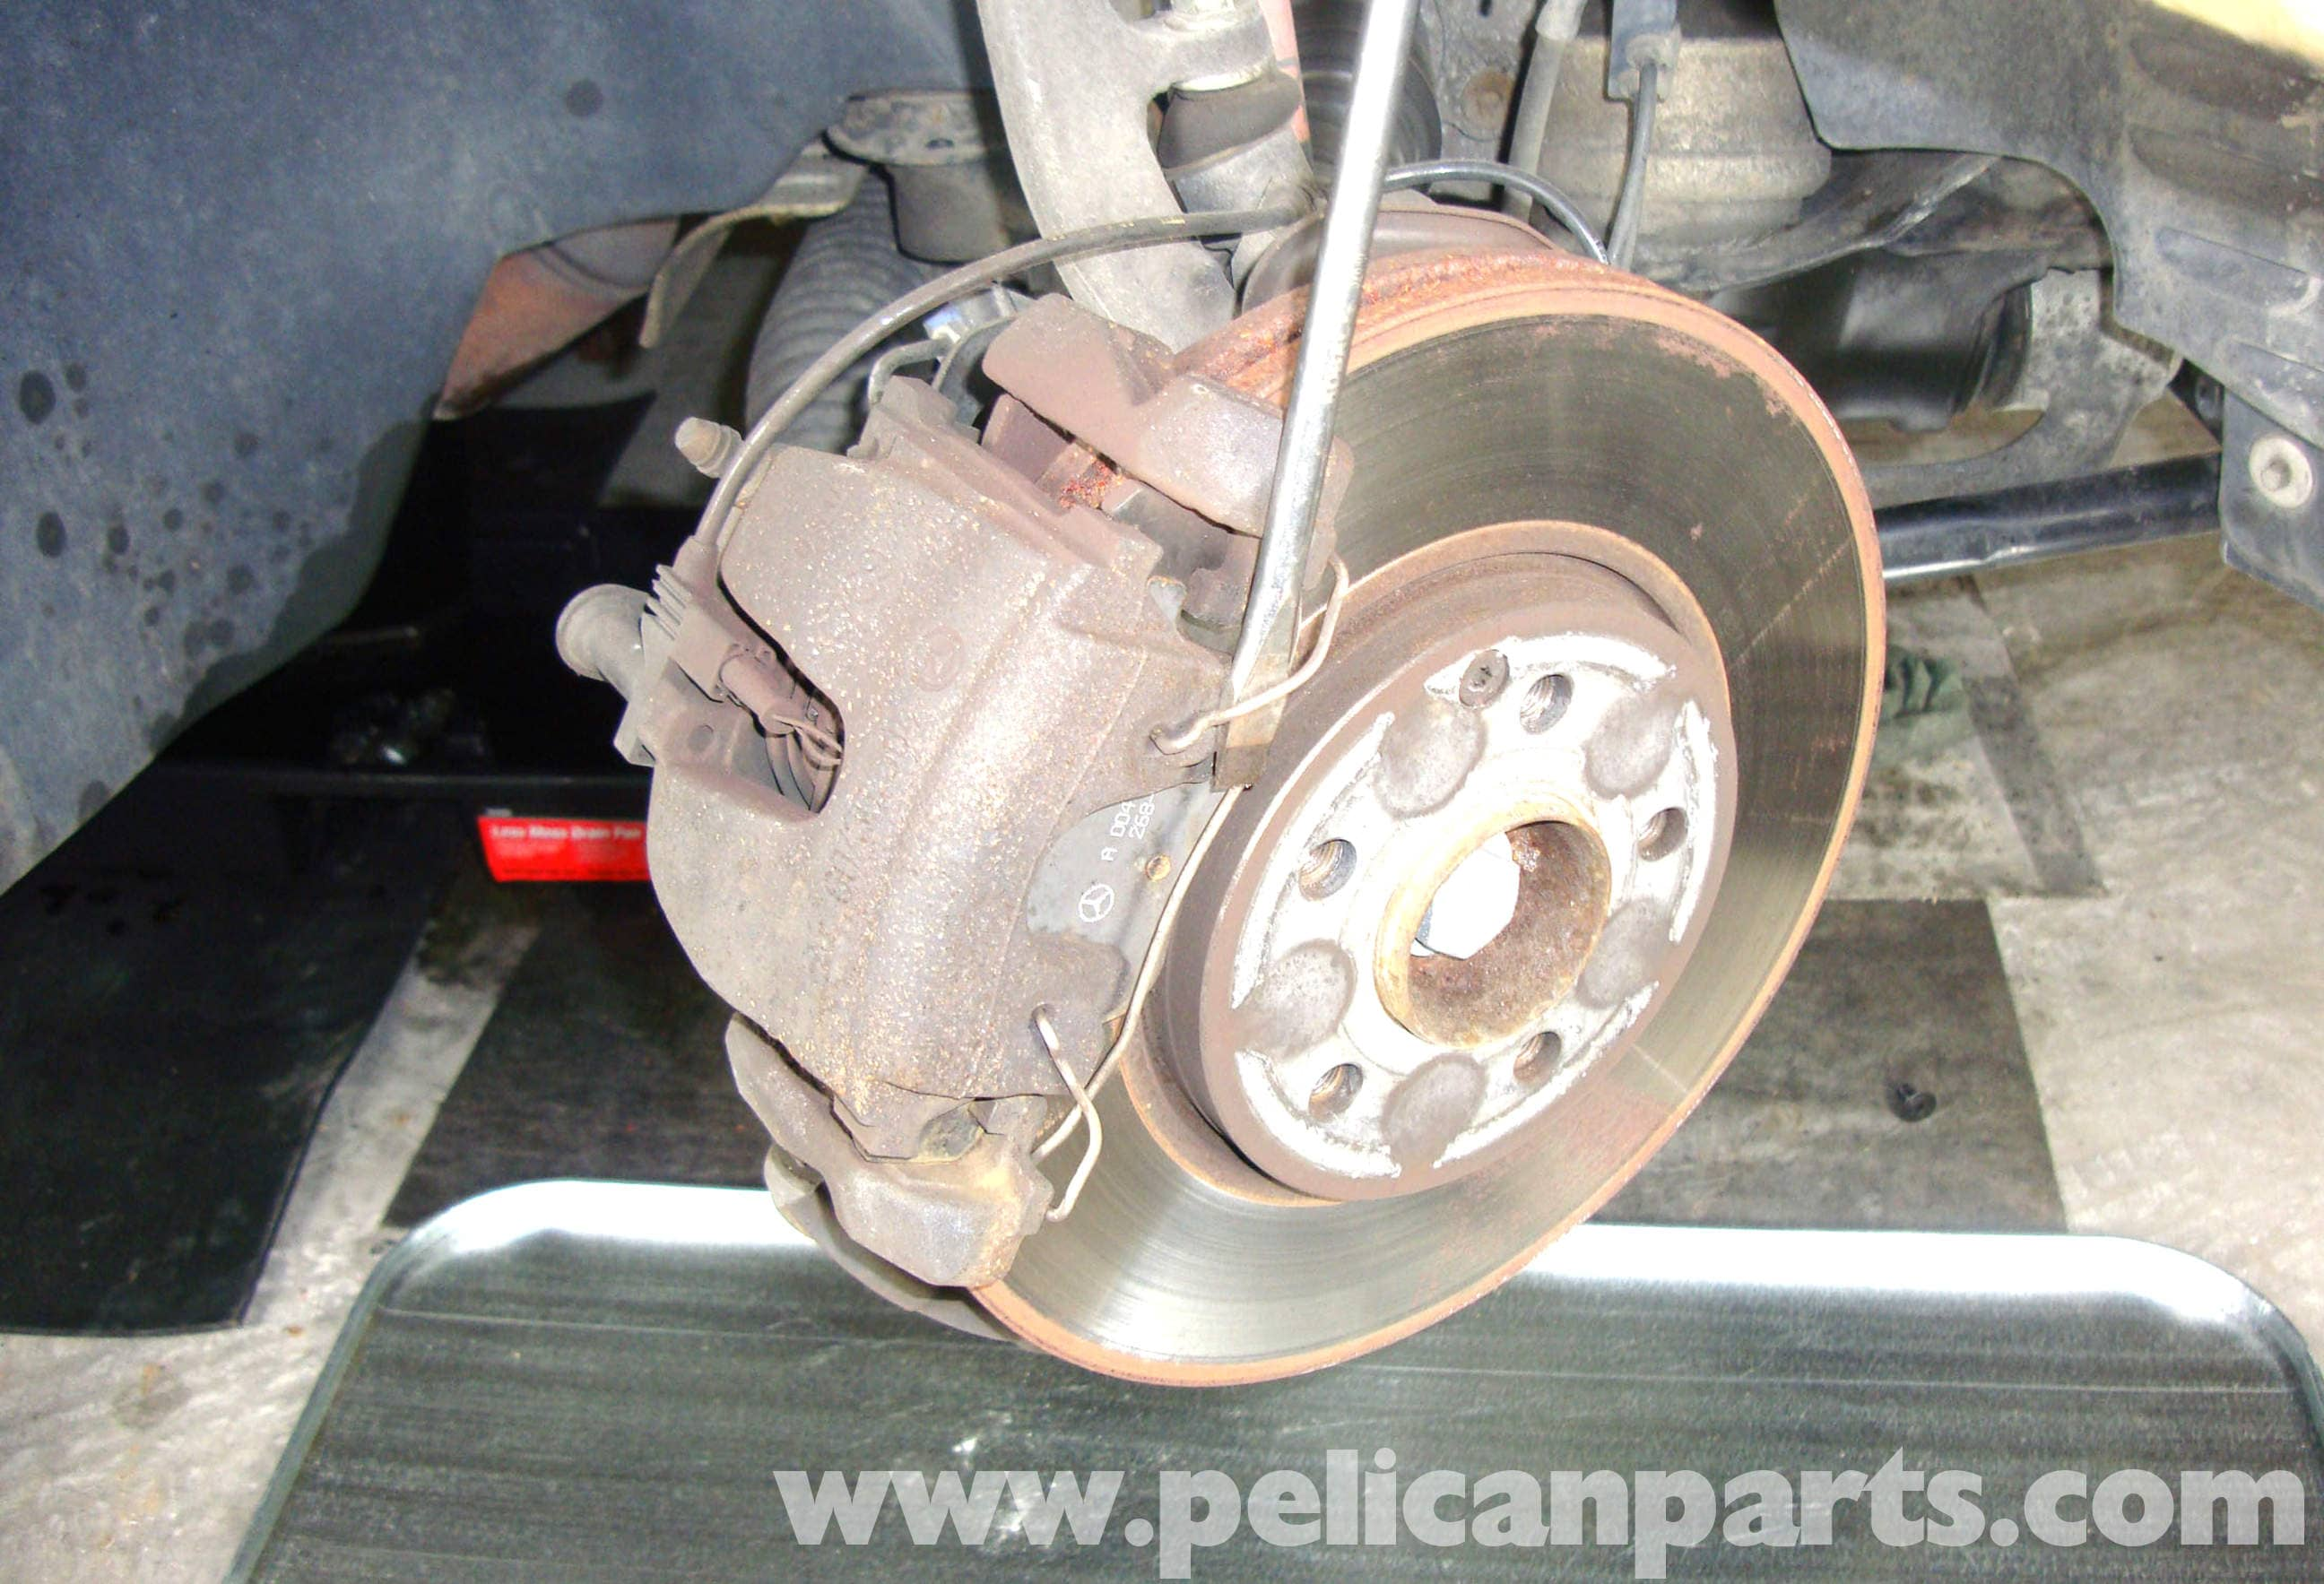 Mercedes benz w211 brake pad replacement 2003 2009 e320 for Mercedes benz rotors and pads